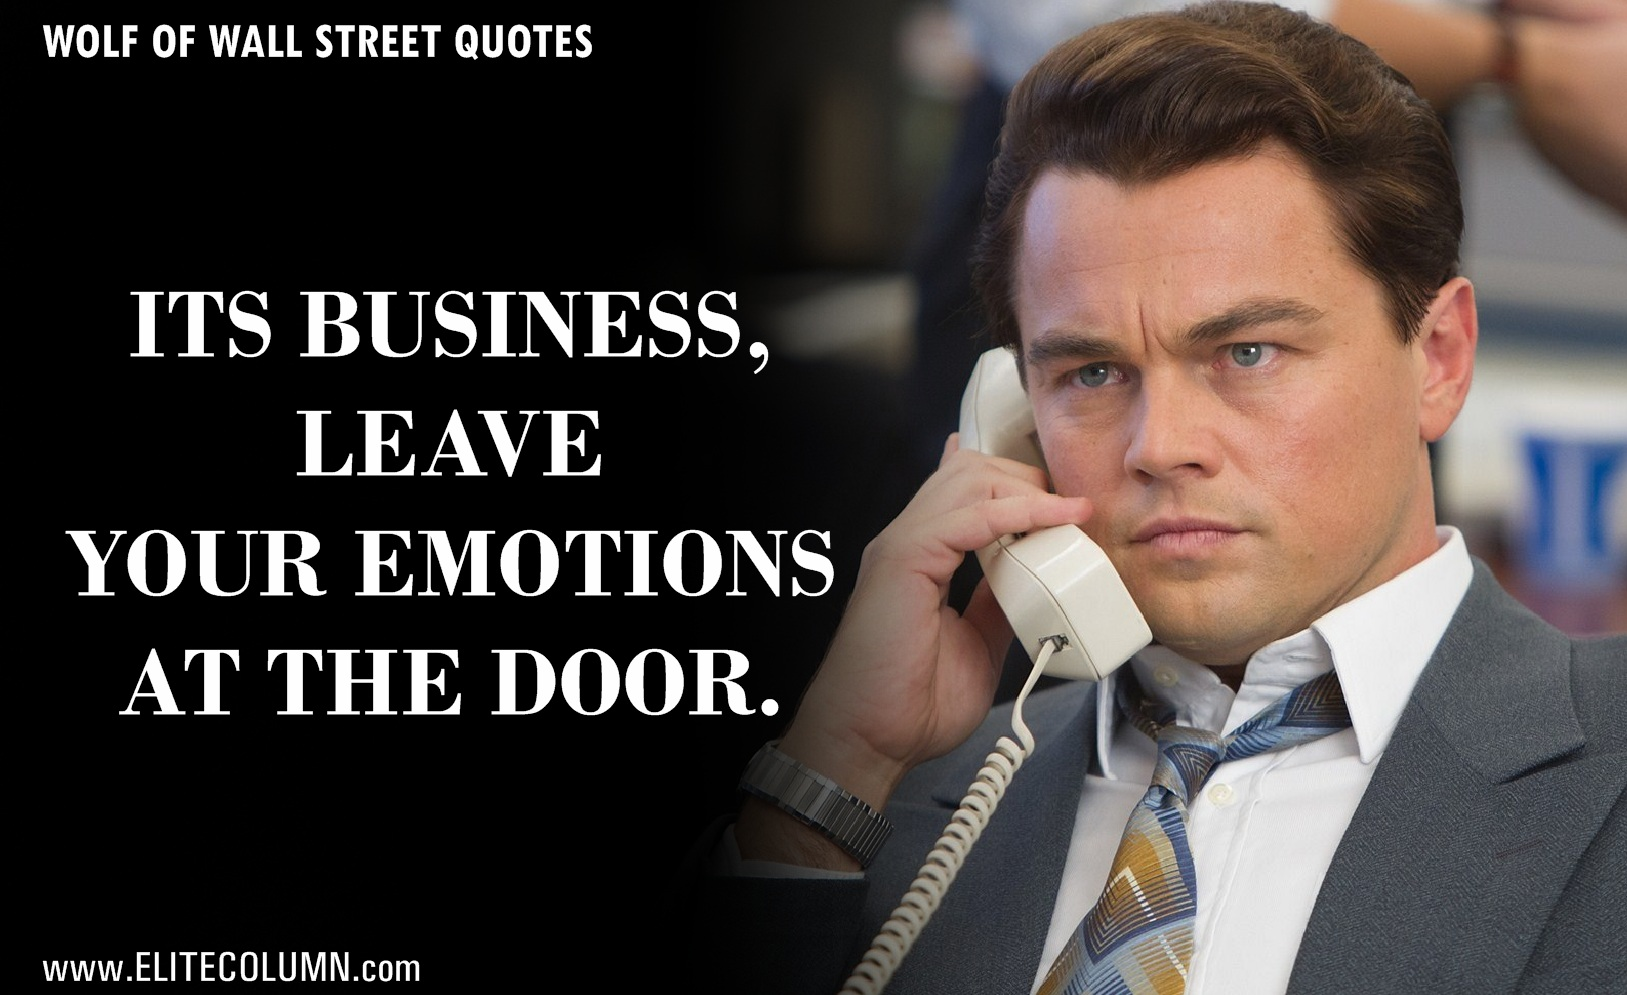 12 Epic Leonardo Dicaprio Quotes From The Wolf Of Wall